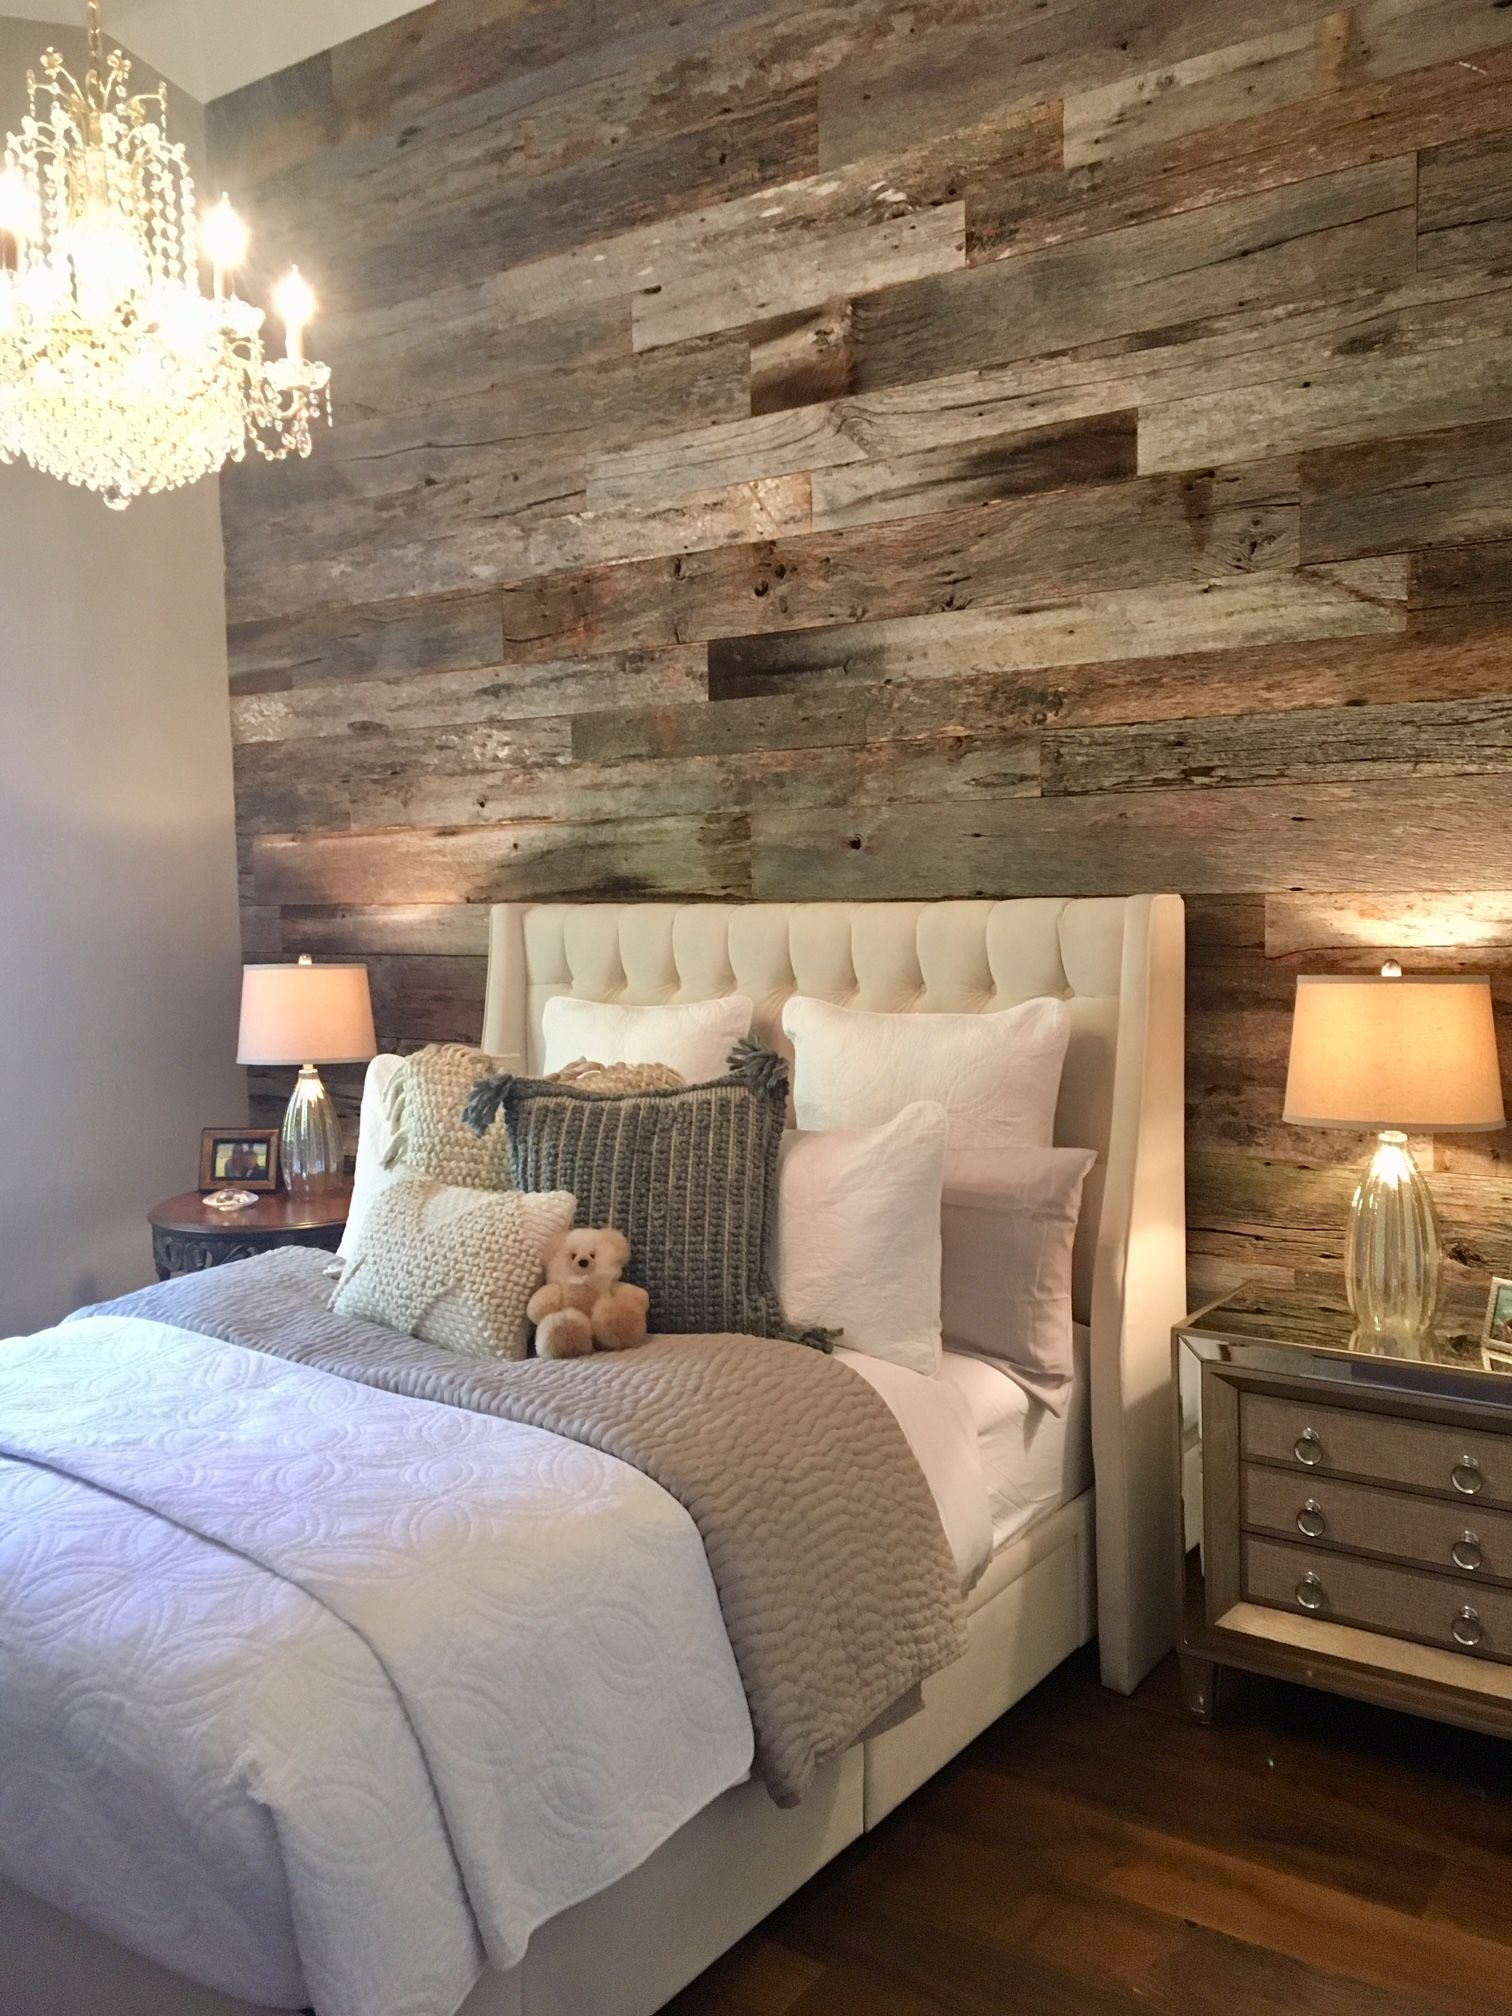 Tobacco Grey Barn Wood Wall Rustic Bedroom Design Small Master Bedroom Rustic Bedroom